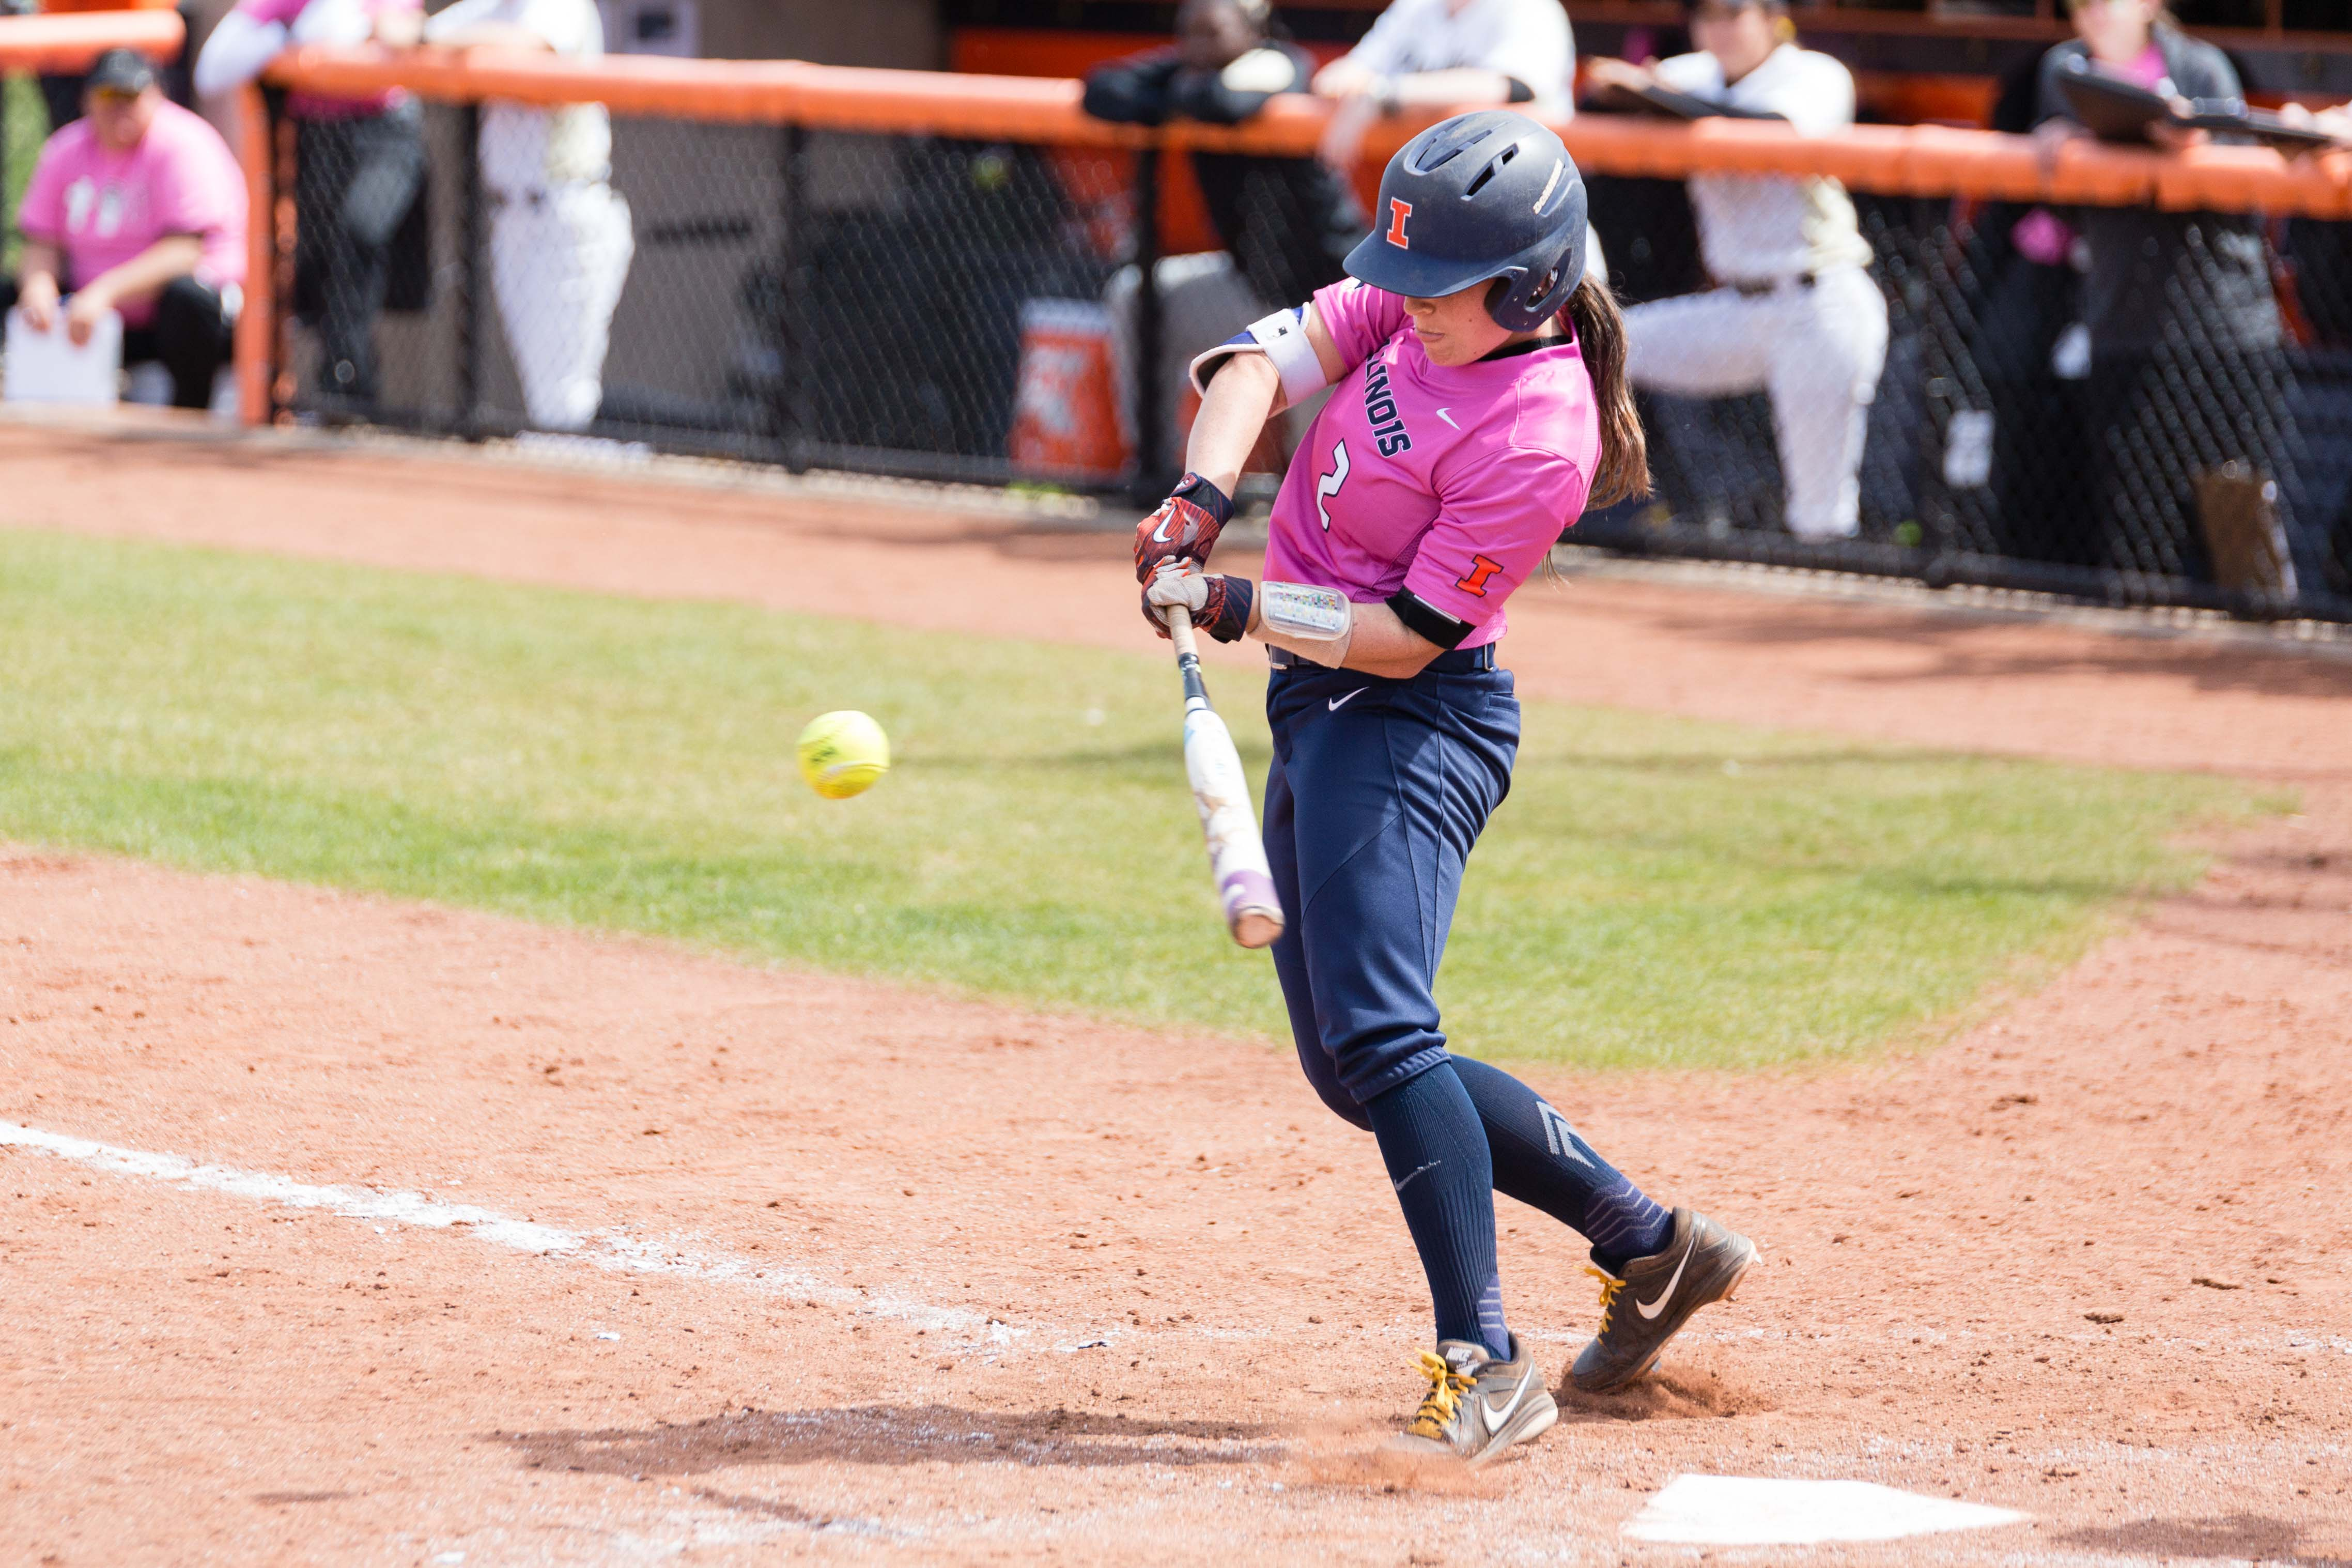 Illinois' Alyssa Gunther singles against Purdue at Eichelberger Field. The Illini won 11-4 on Saturday, partially thanks to Nicole Evans' record-breaking grand slam.